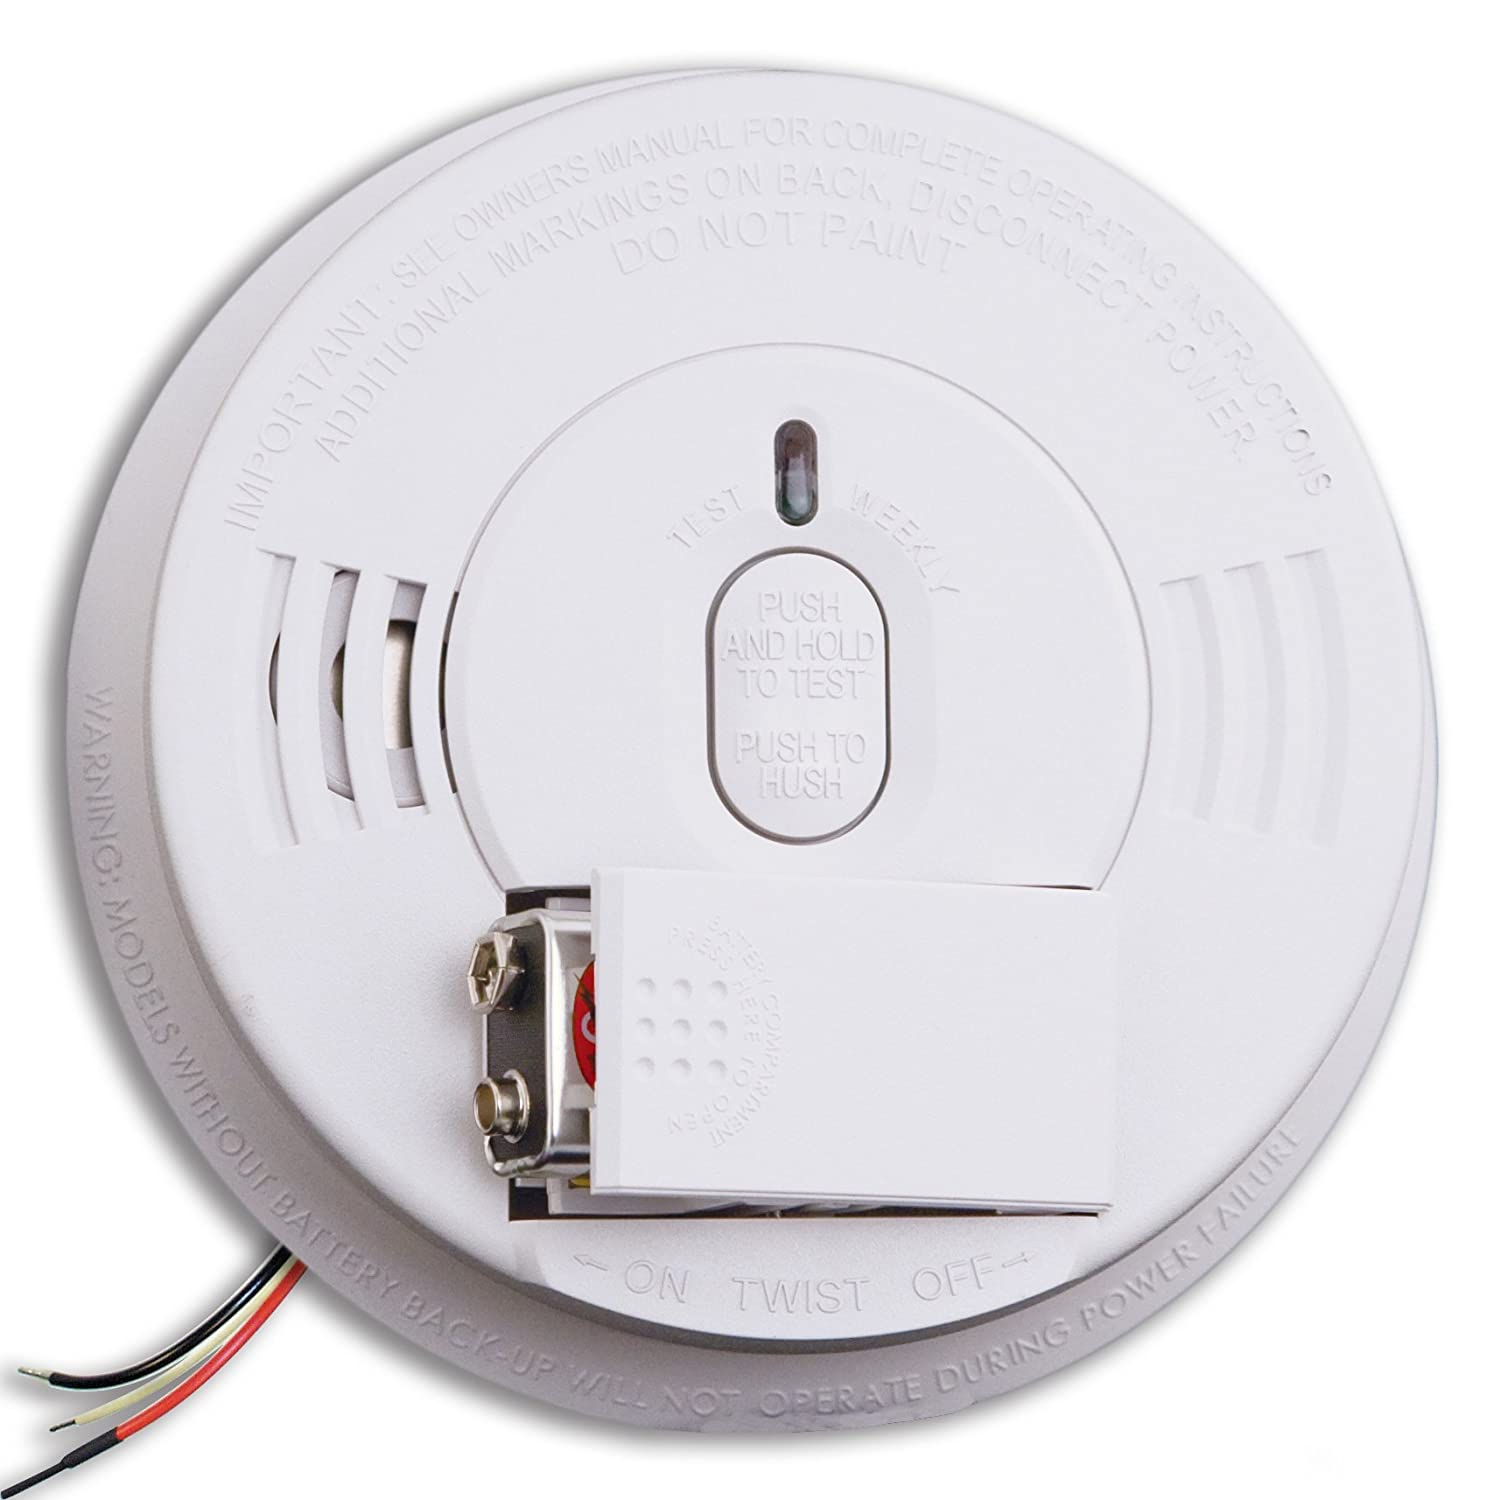 Kidde Ionization Smoke Alarm Comparison